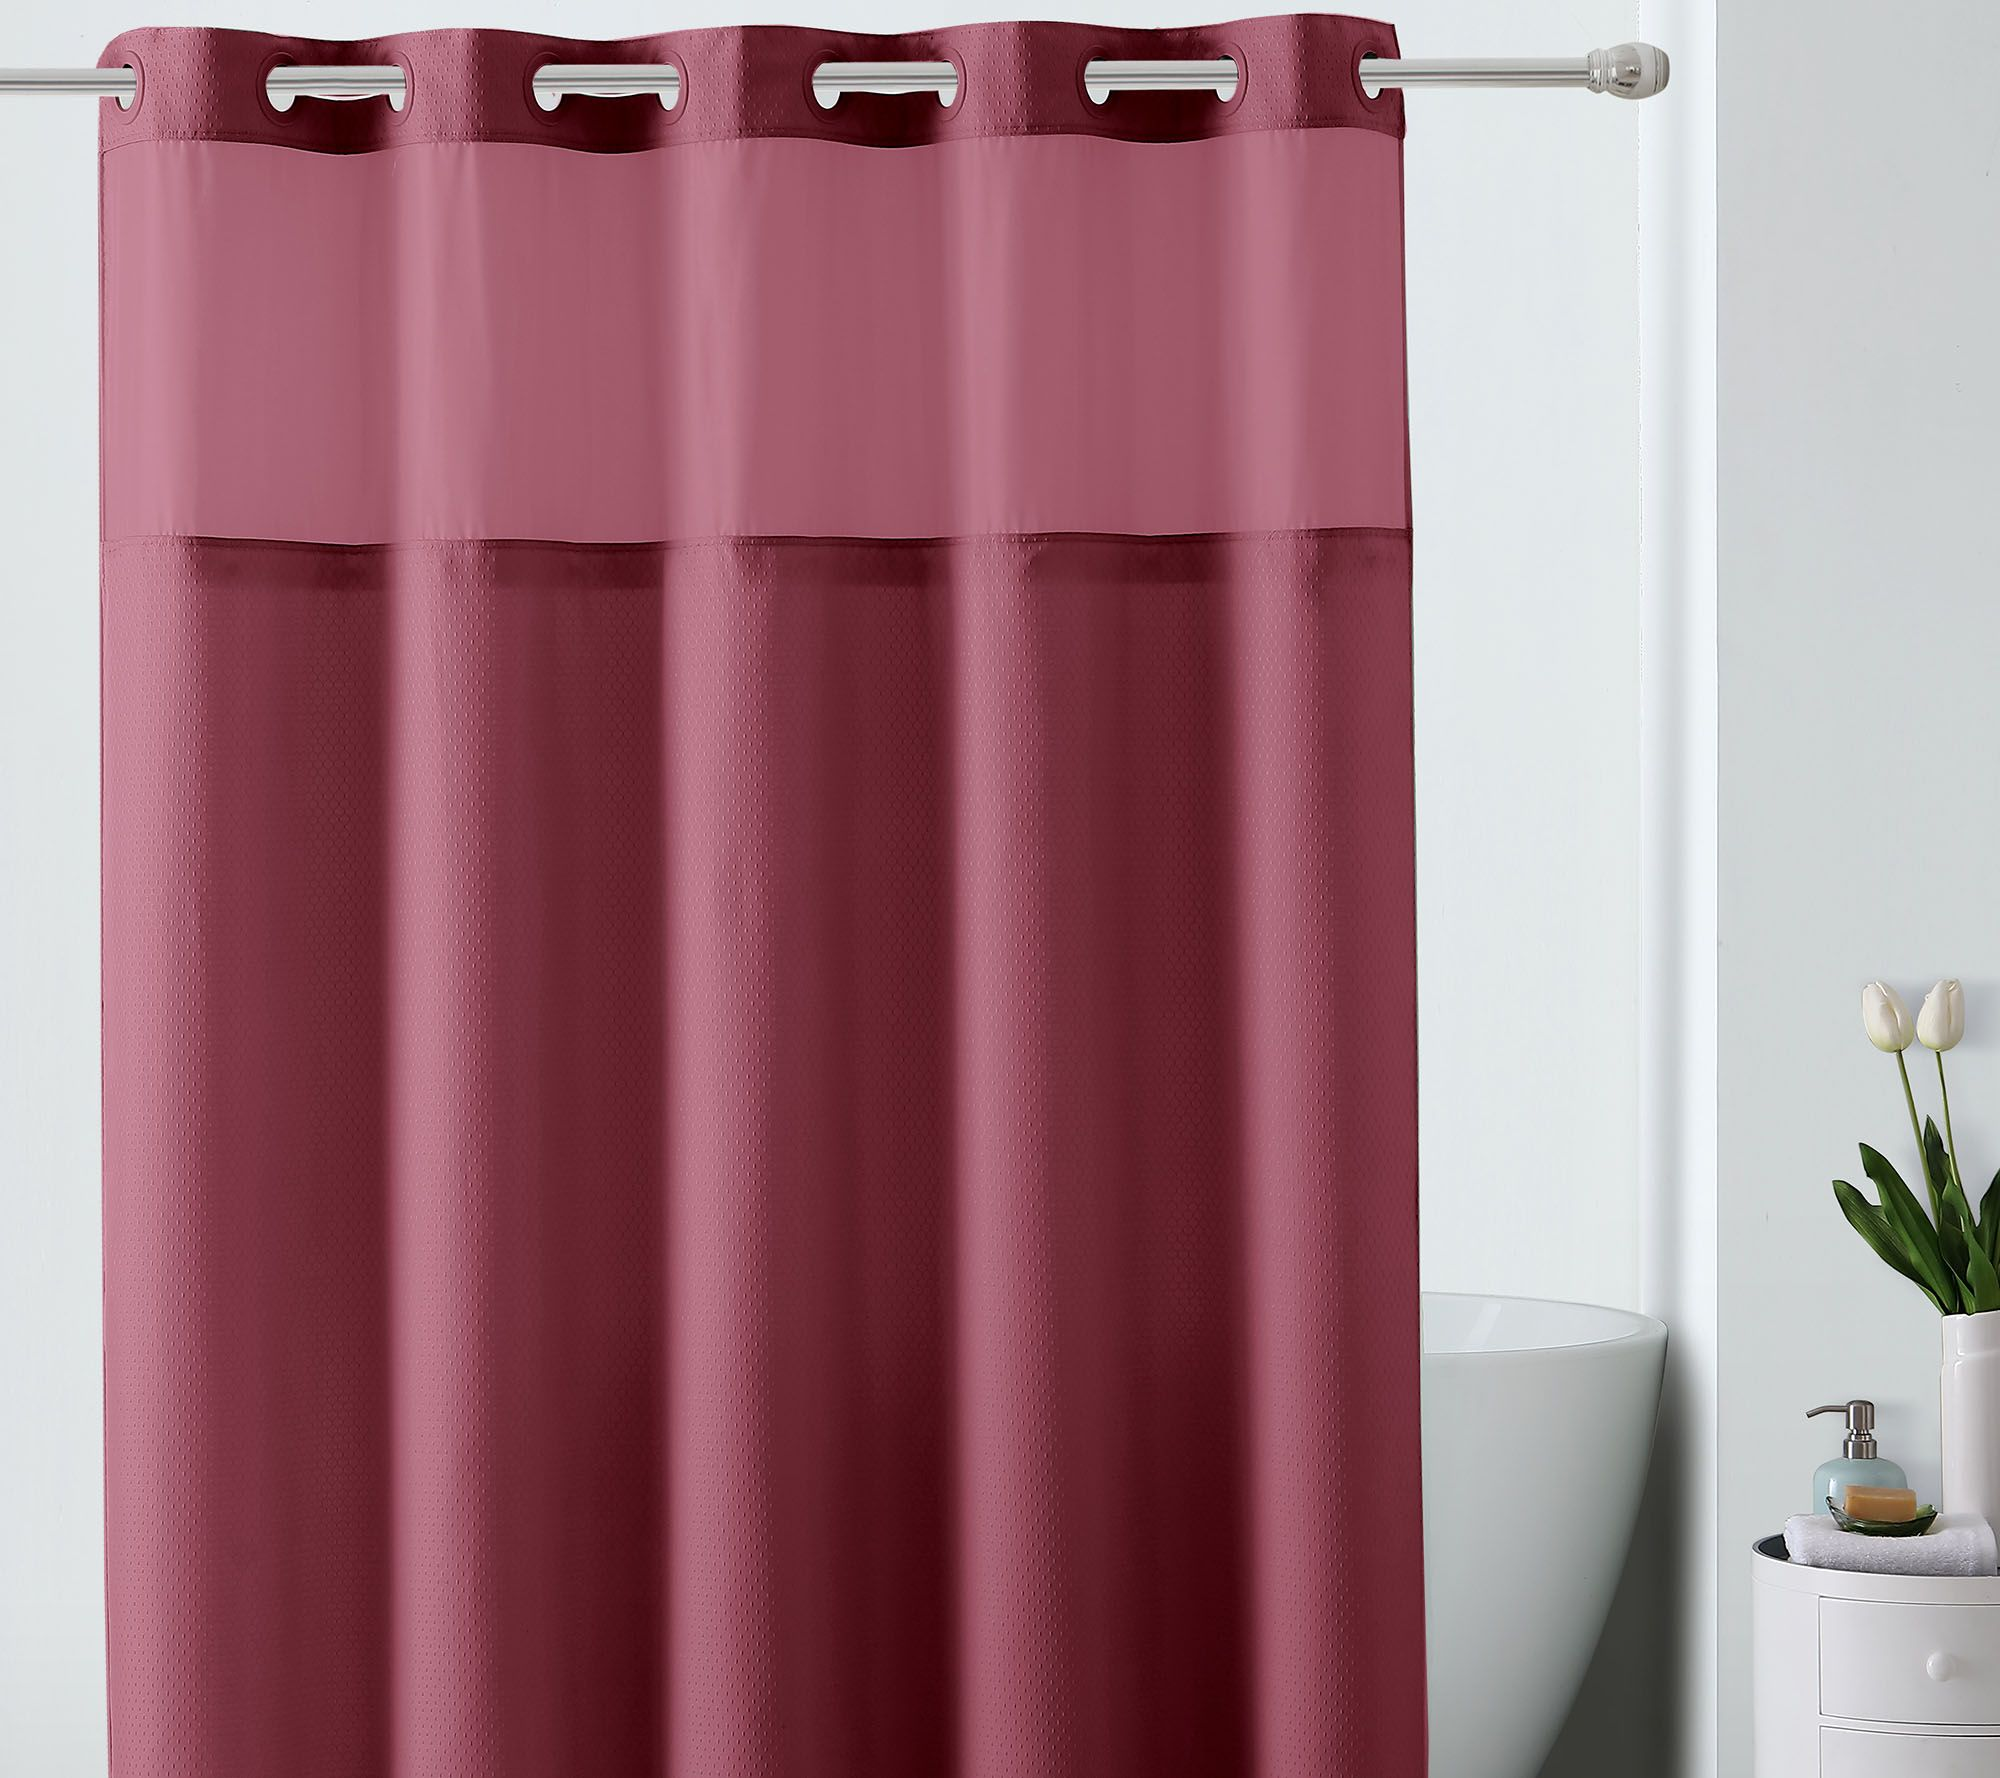 Hookless Jacquard Shower Curtain W Built In Liner